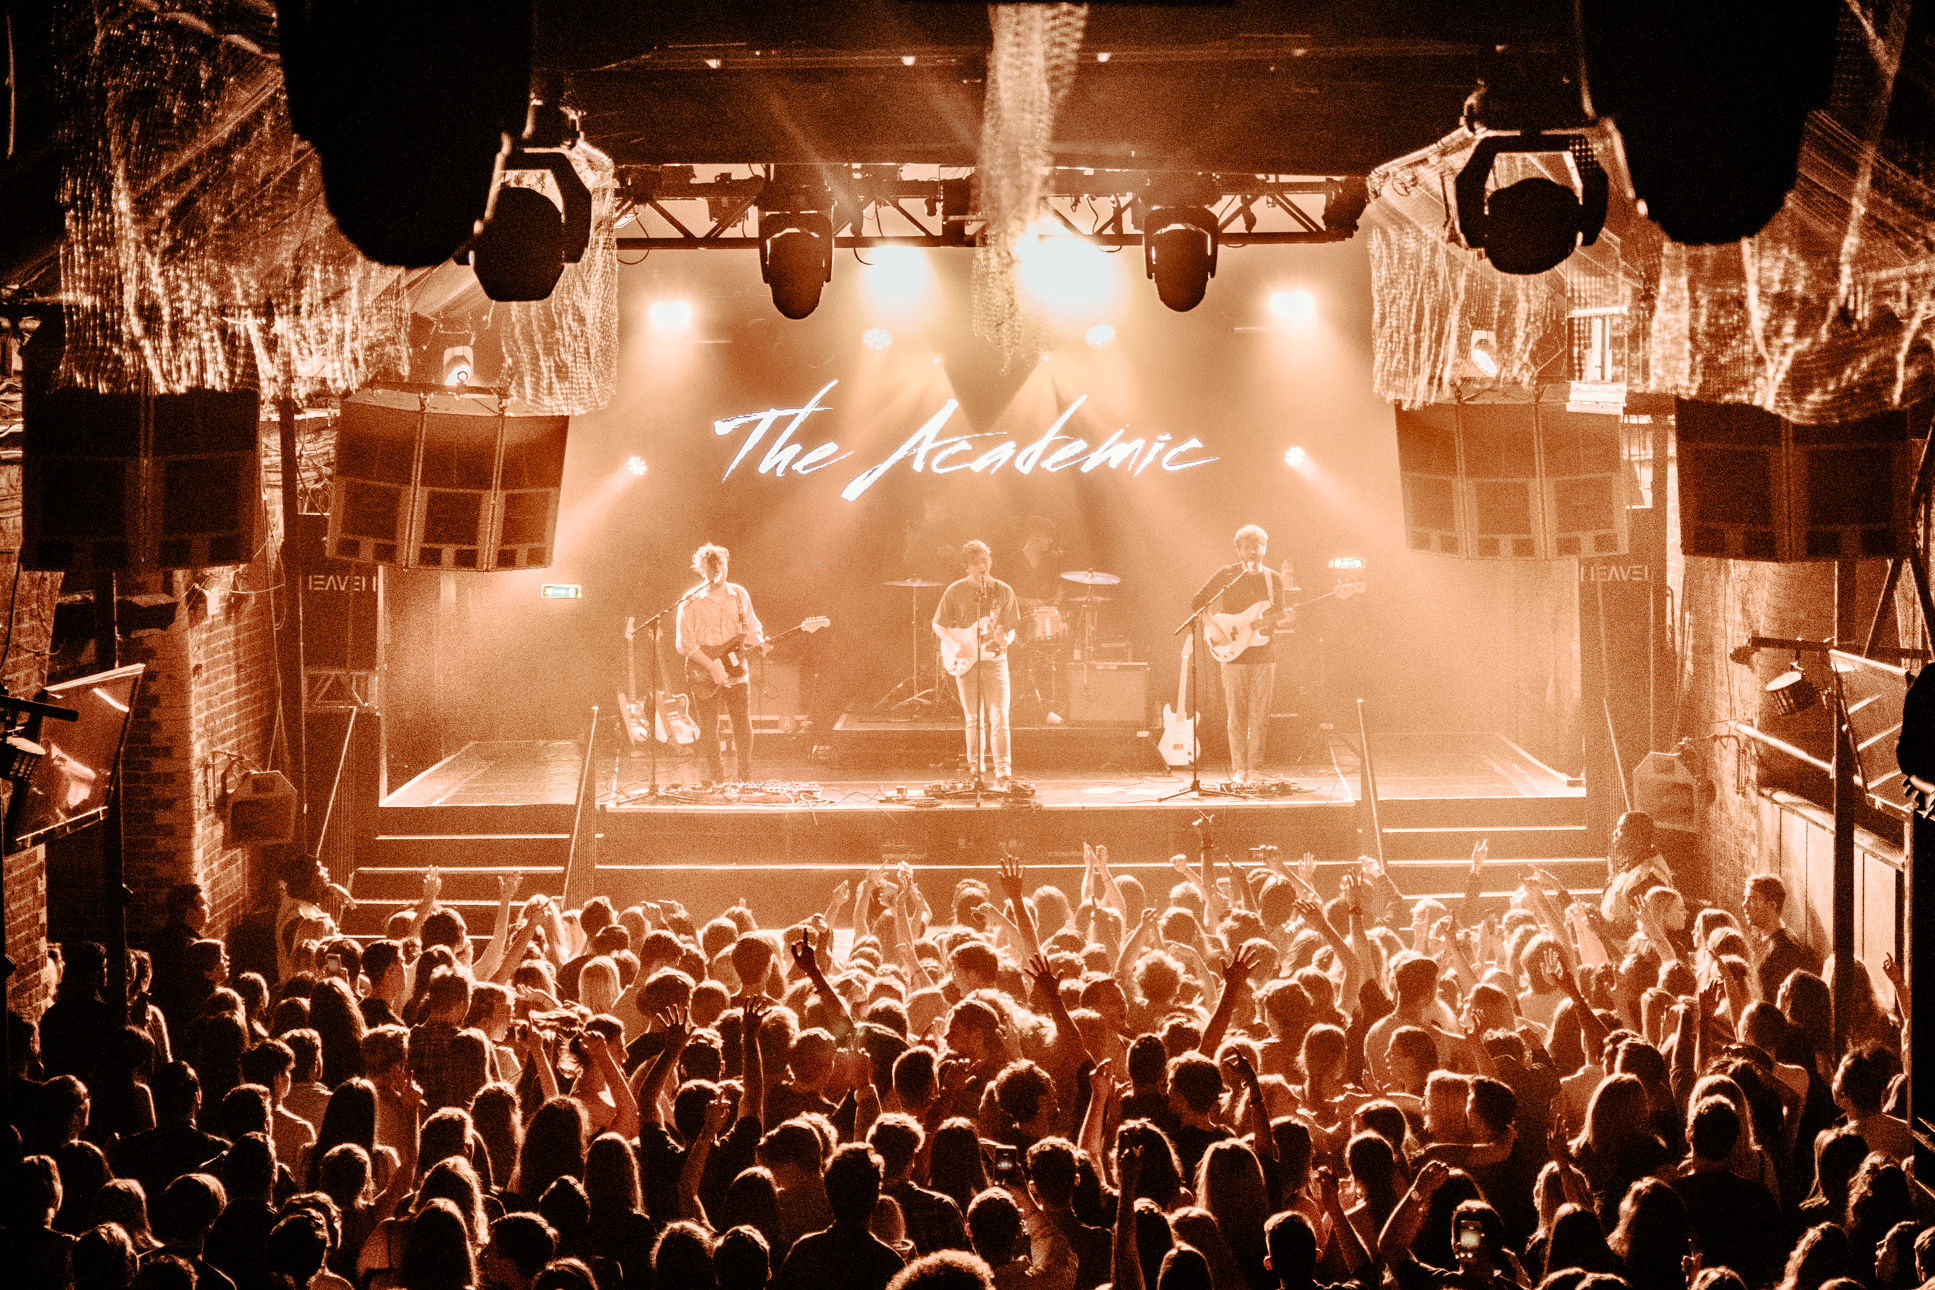 TheAcademic-8.jpg